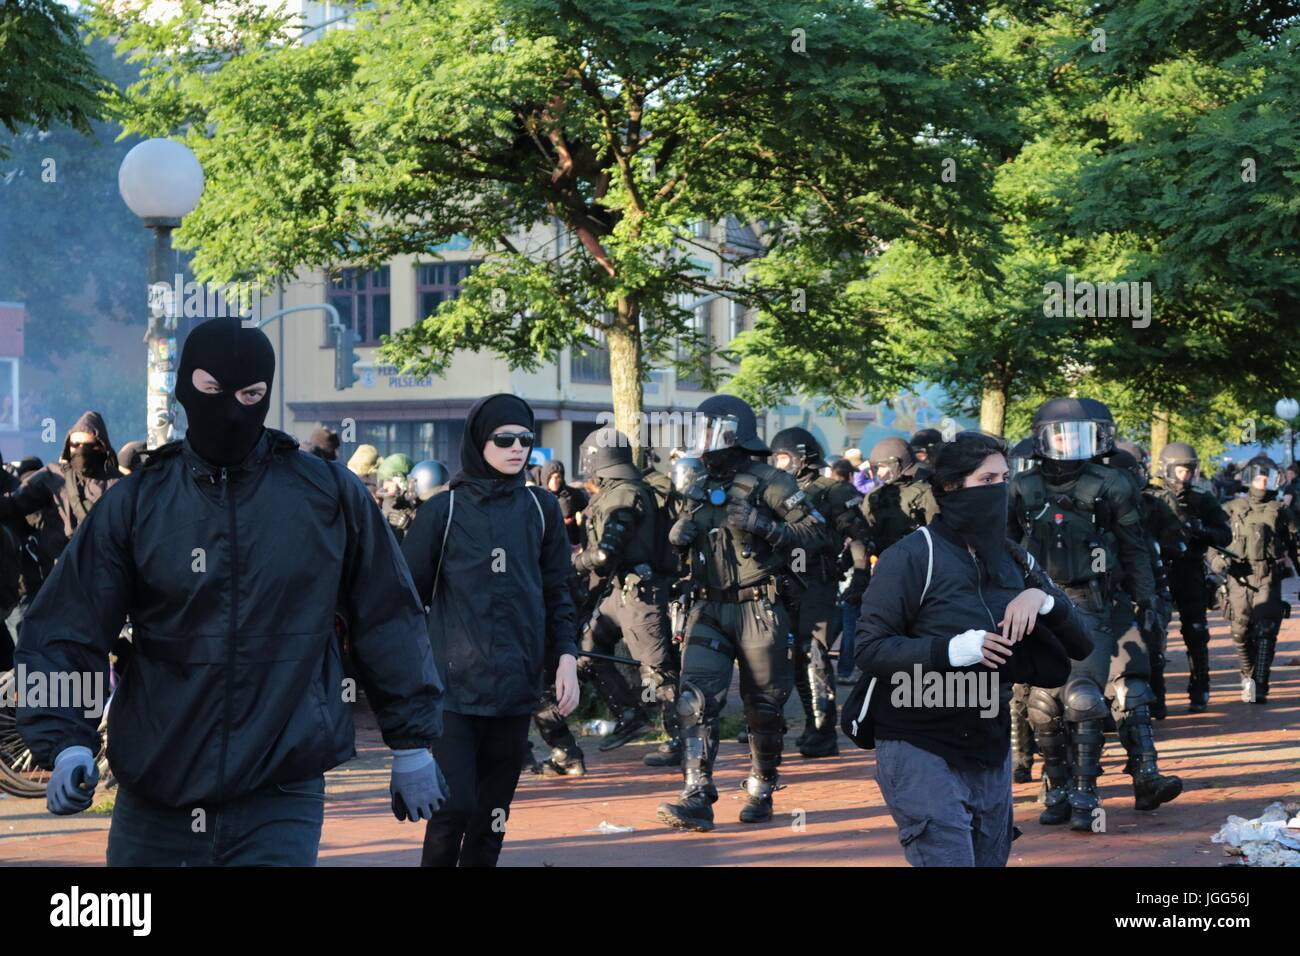 Hamburg, Germany. 6th July, 2017. Protesters flee as riot police crack down on an anti g20 protest Credit: Conall Stock Photo